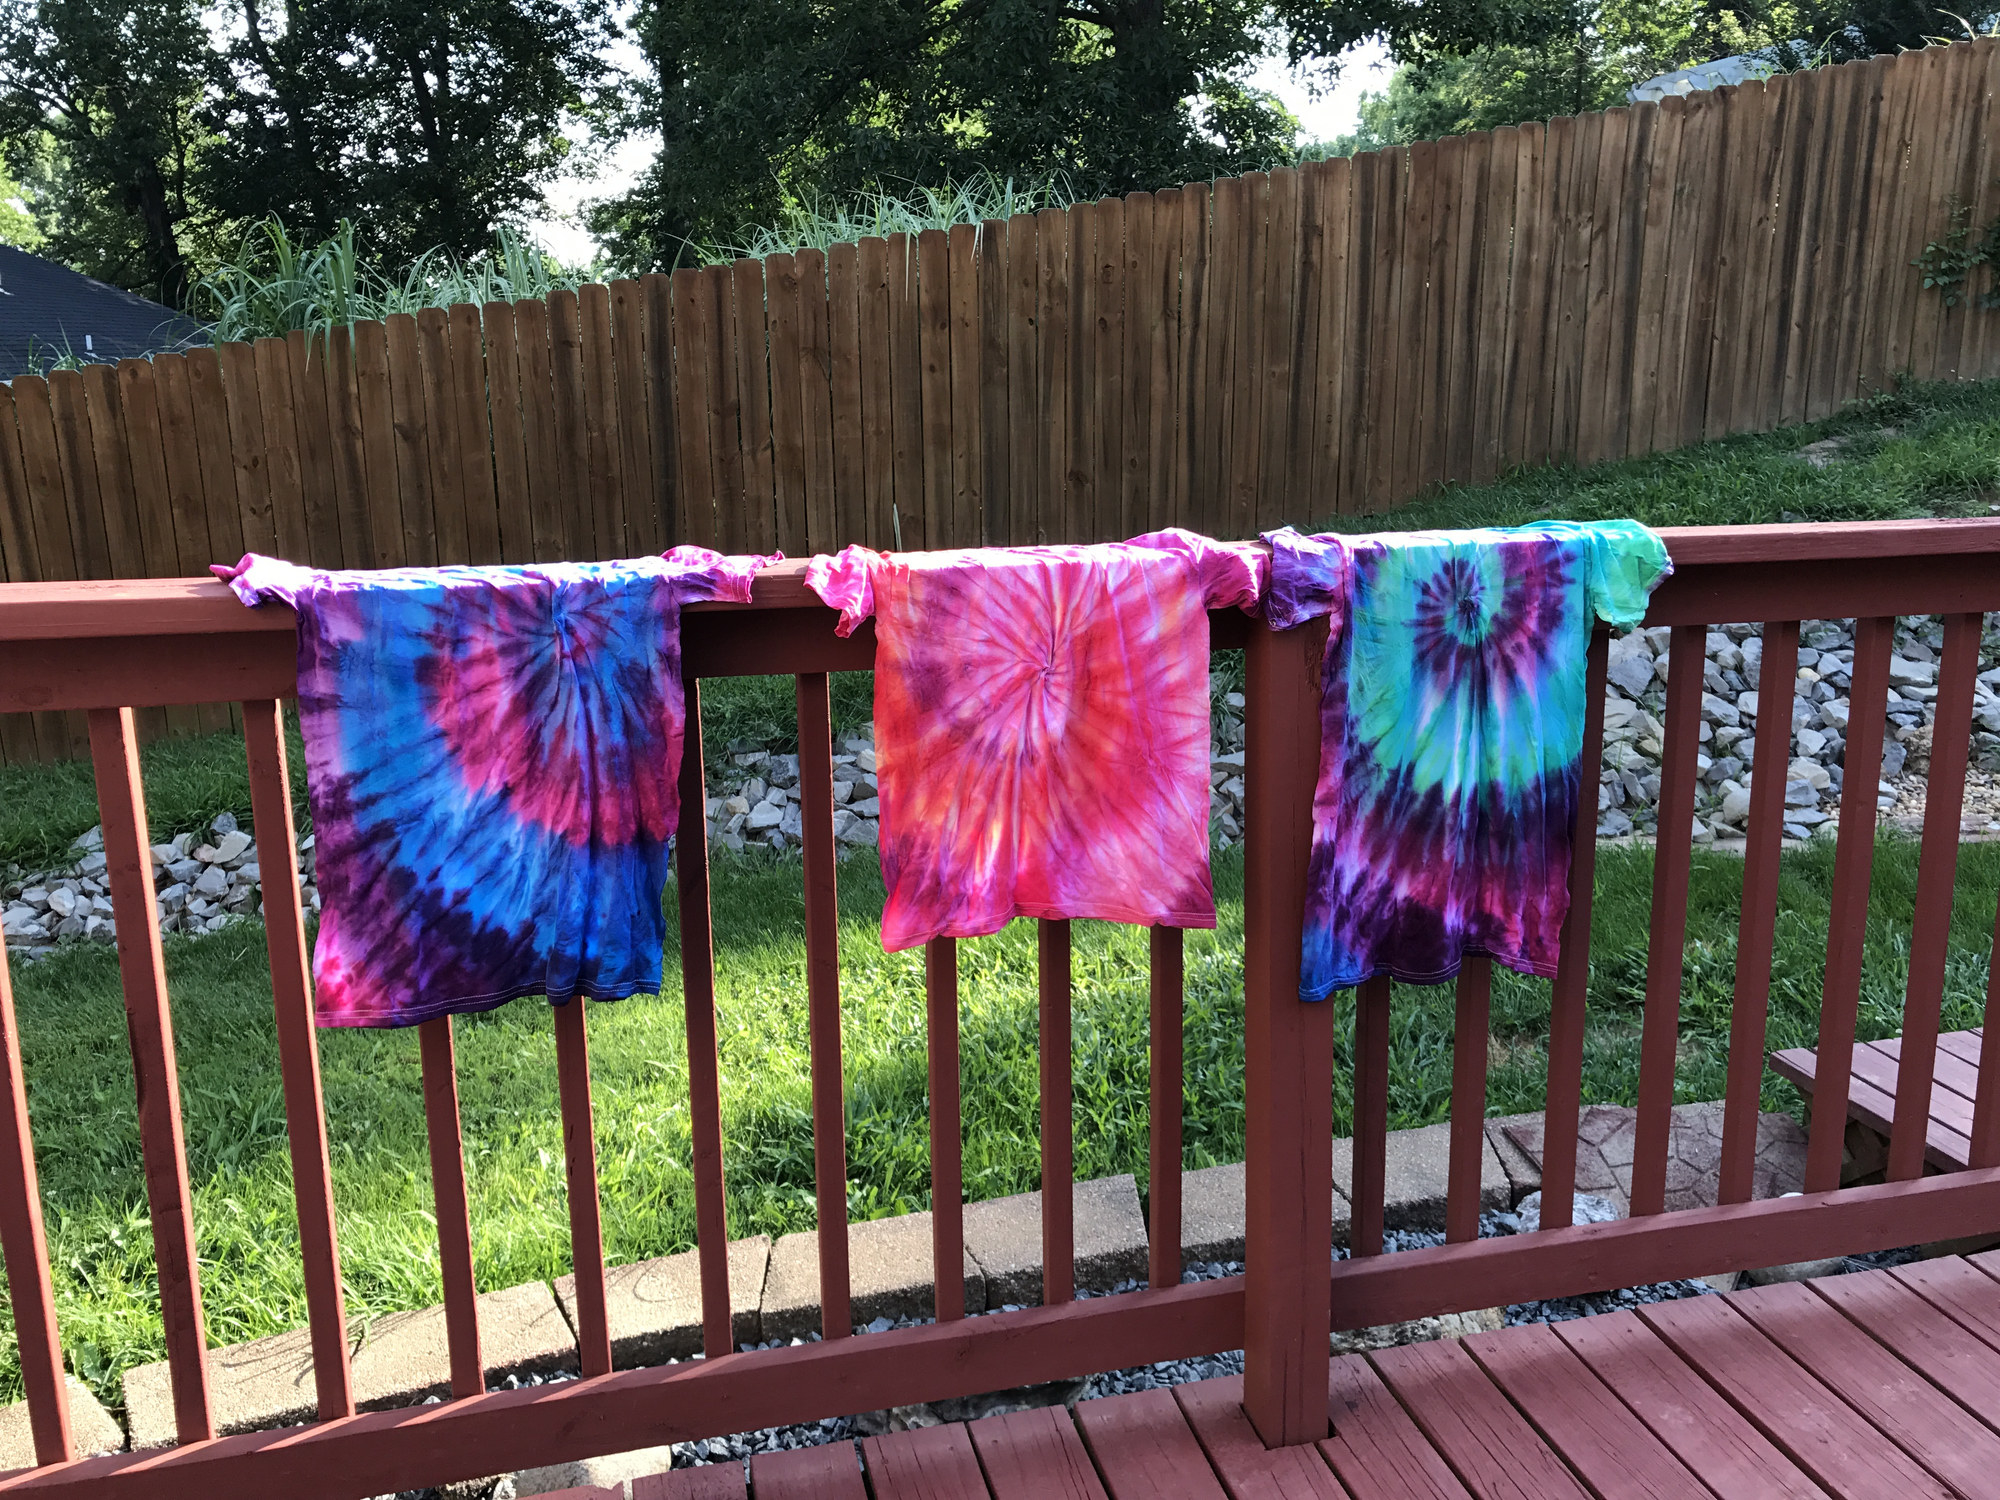 photo showing three tie dyed shirts drying outside in a backyard, one shirt is painted pink, purple, blue and navy, the second shirt is pink, purple and orange, the third is turquoise, purple, navy and blue